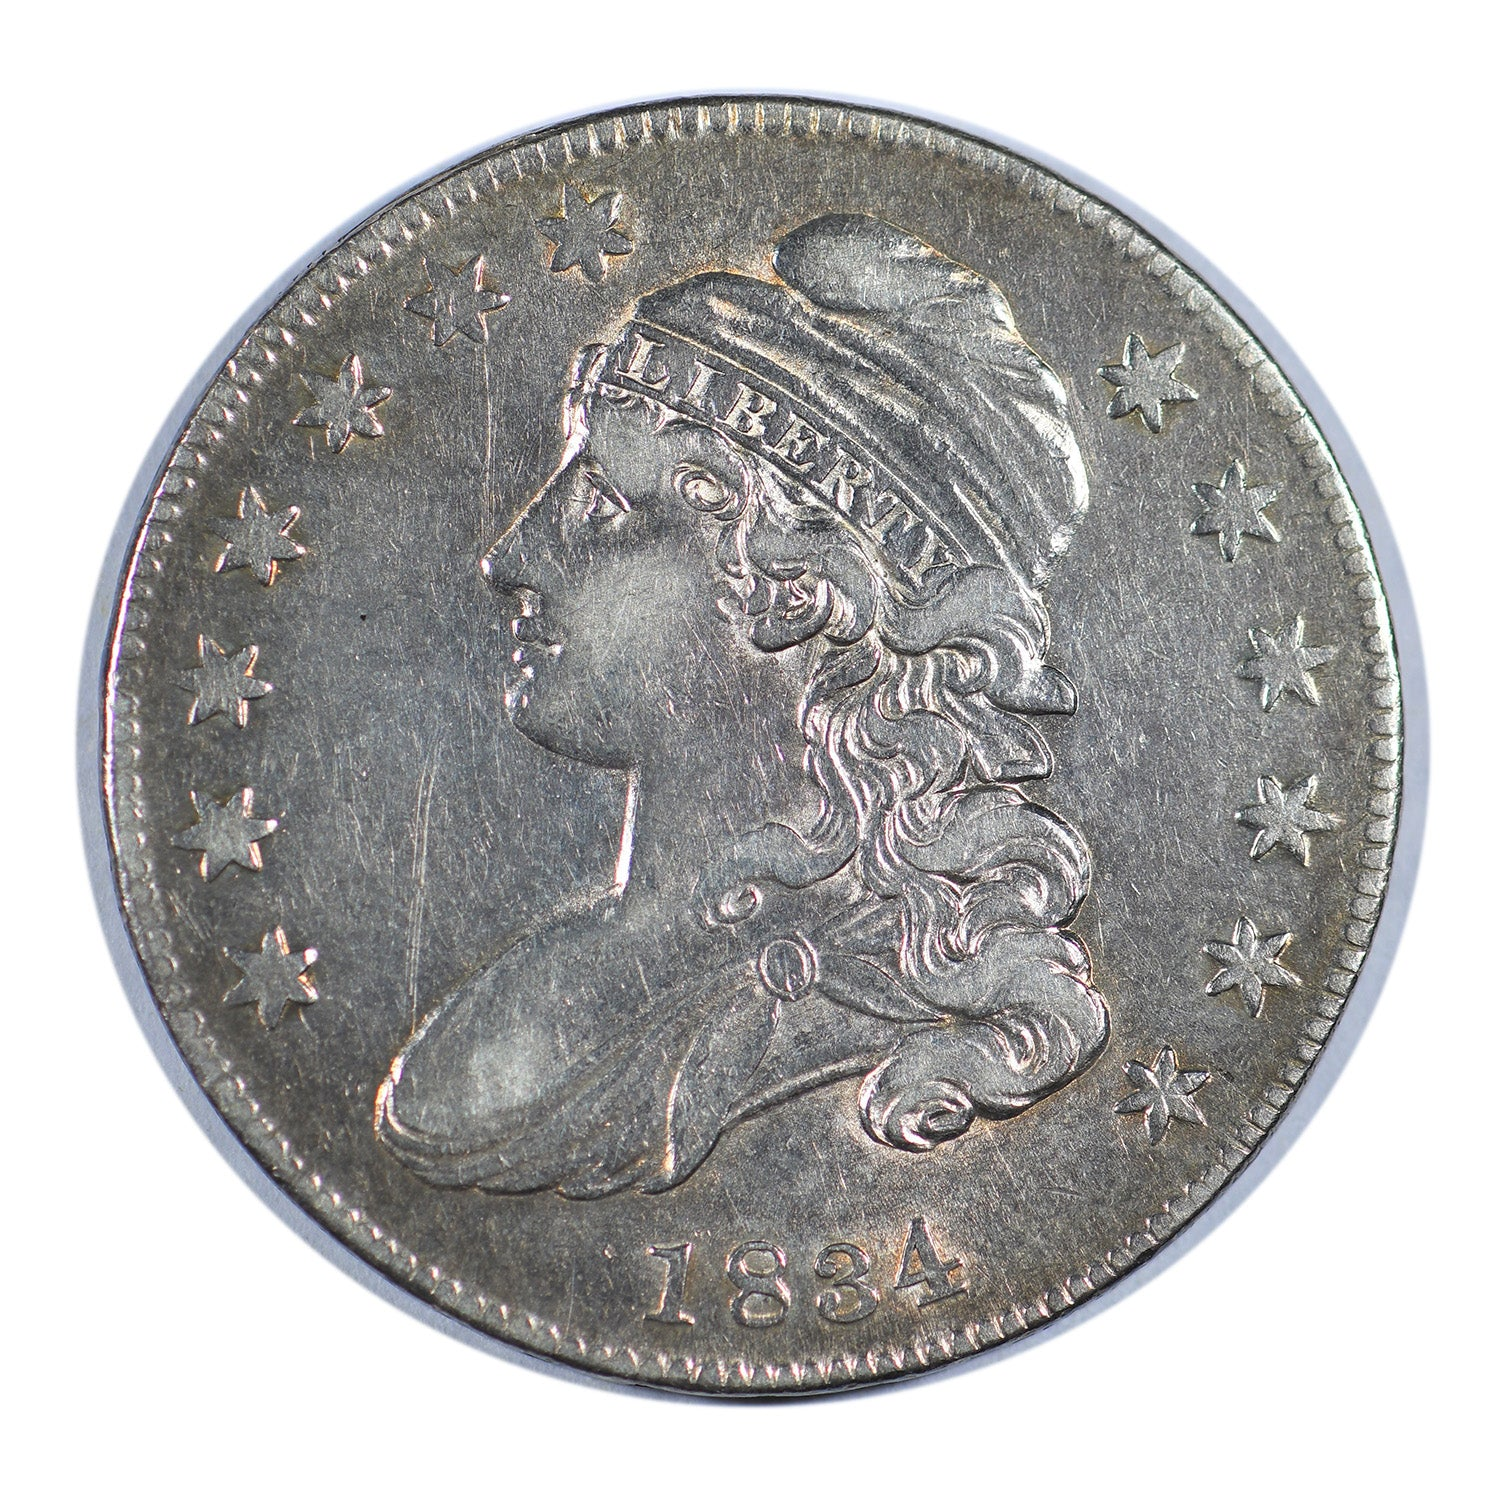 1834 Capped Bust Half Dollar Small Date/Letters Very Fine Condition